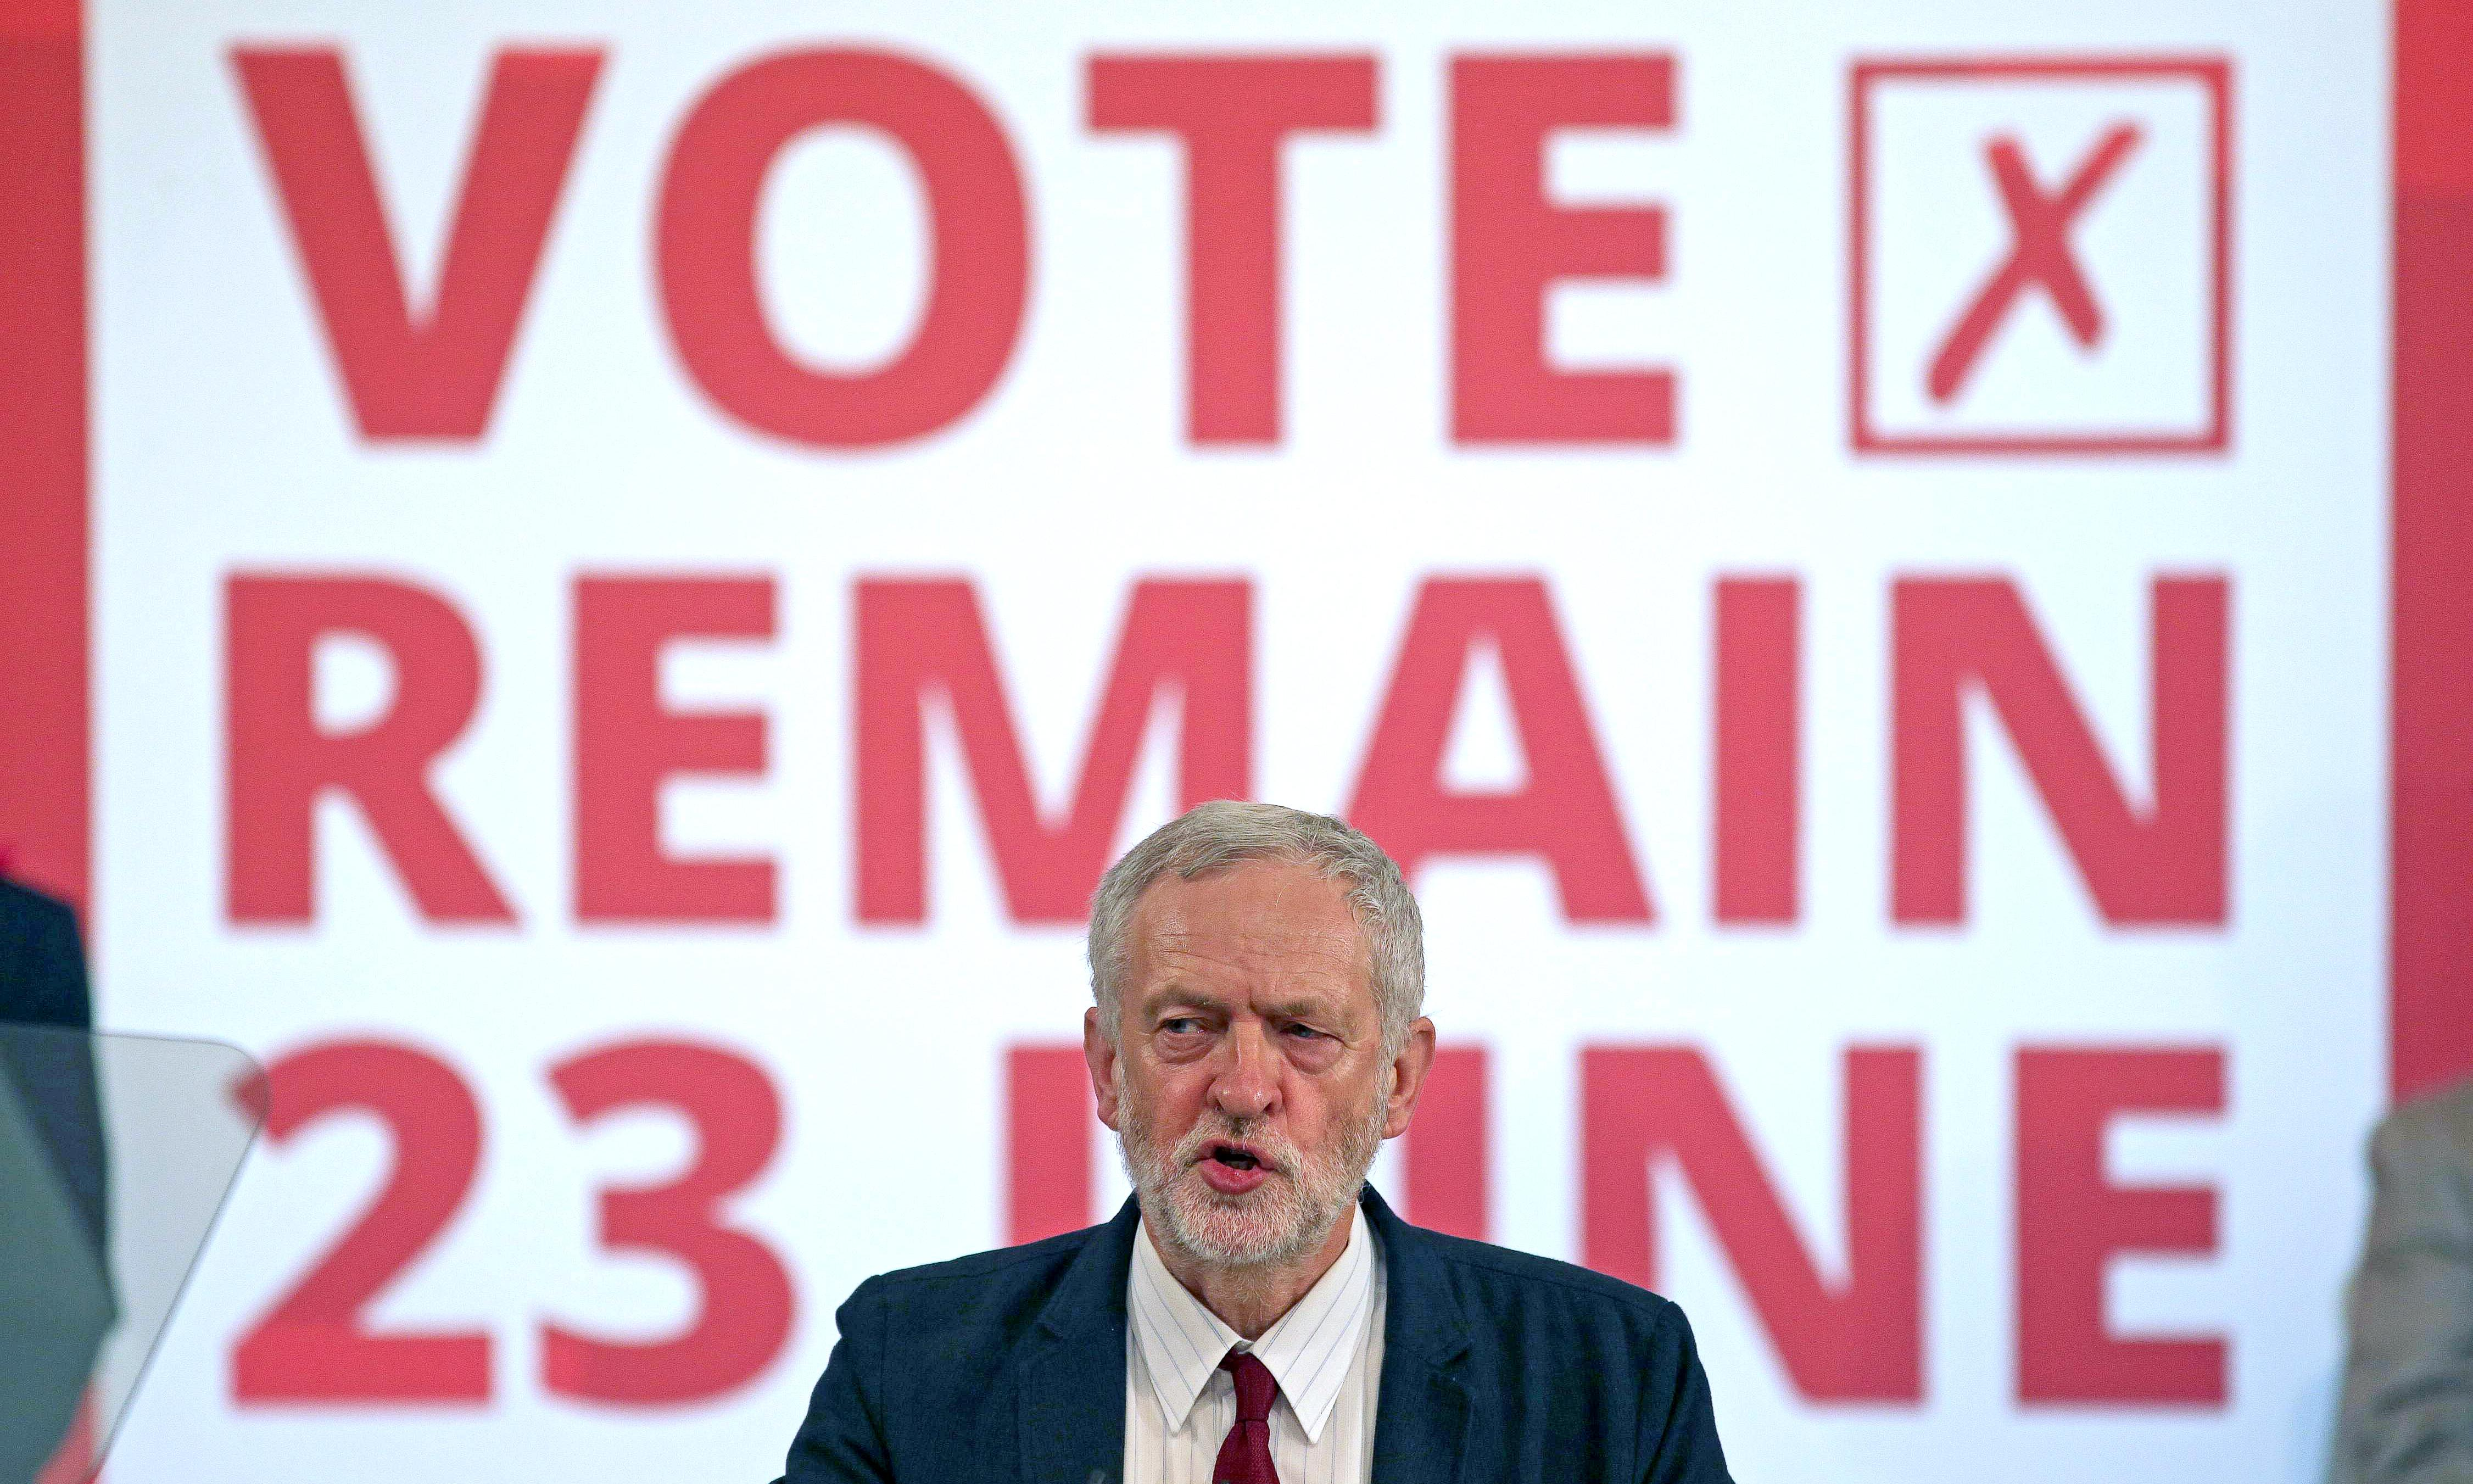 Corbyn's failed Brexit strategy sealed Labour's fate